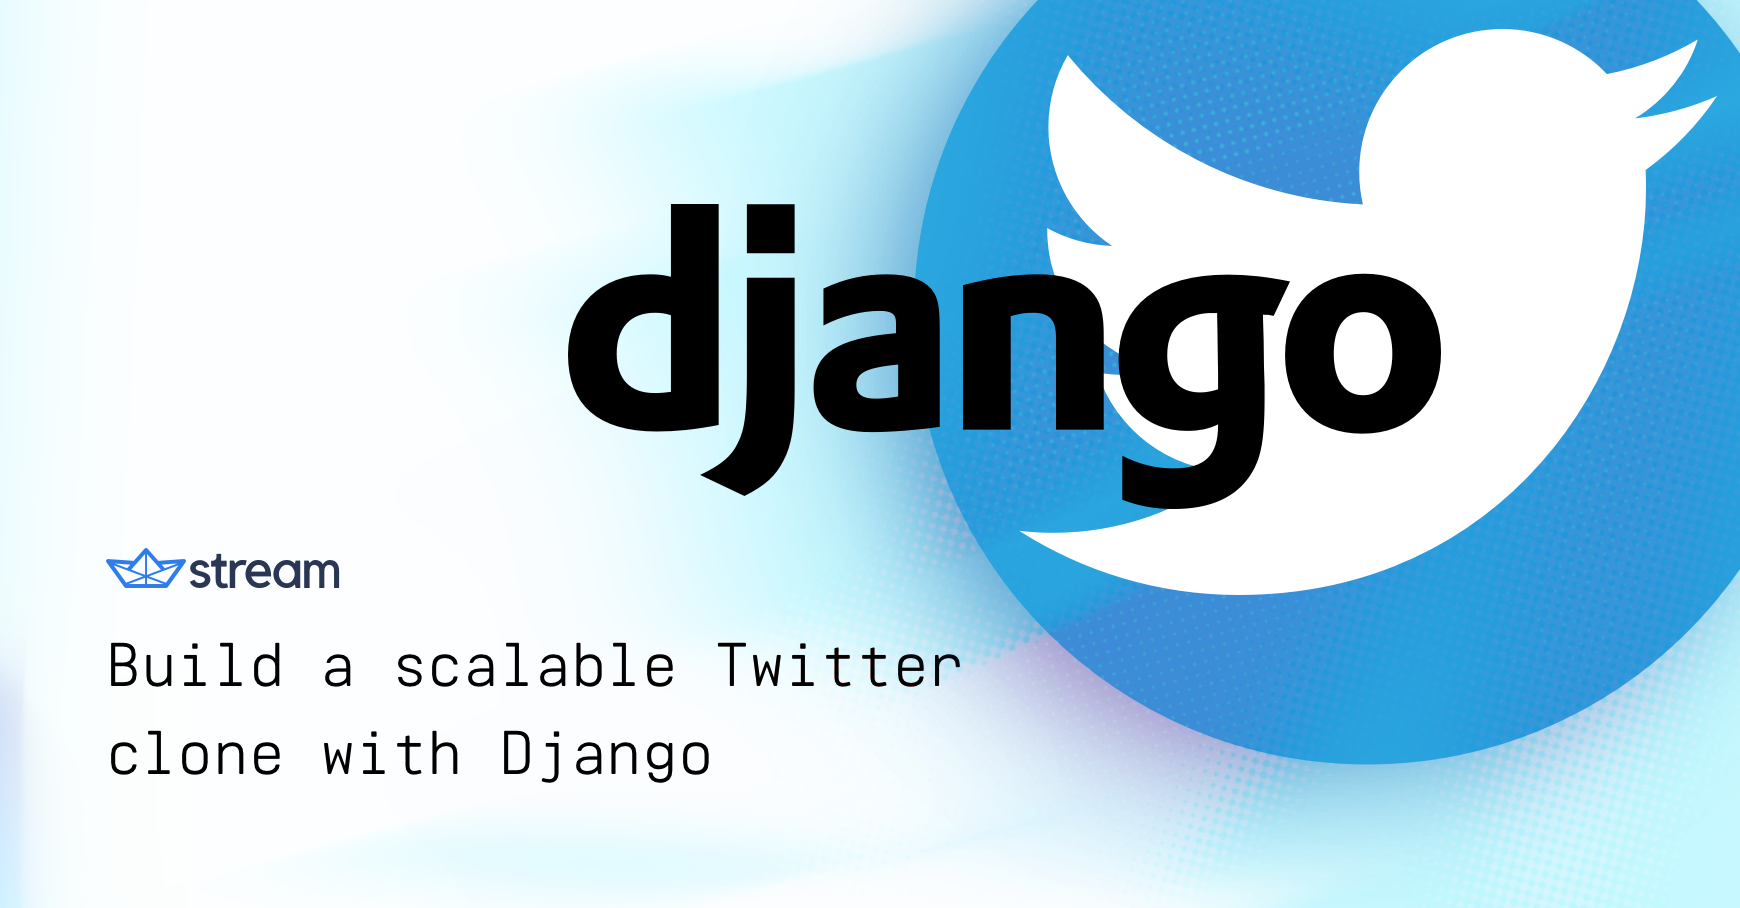 Build a scalable Twitter clone with Django and Stream